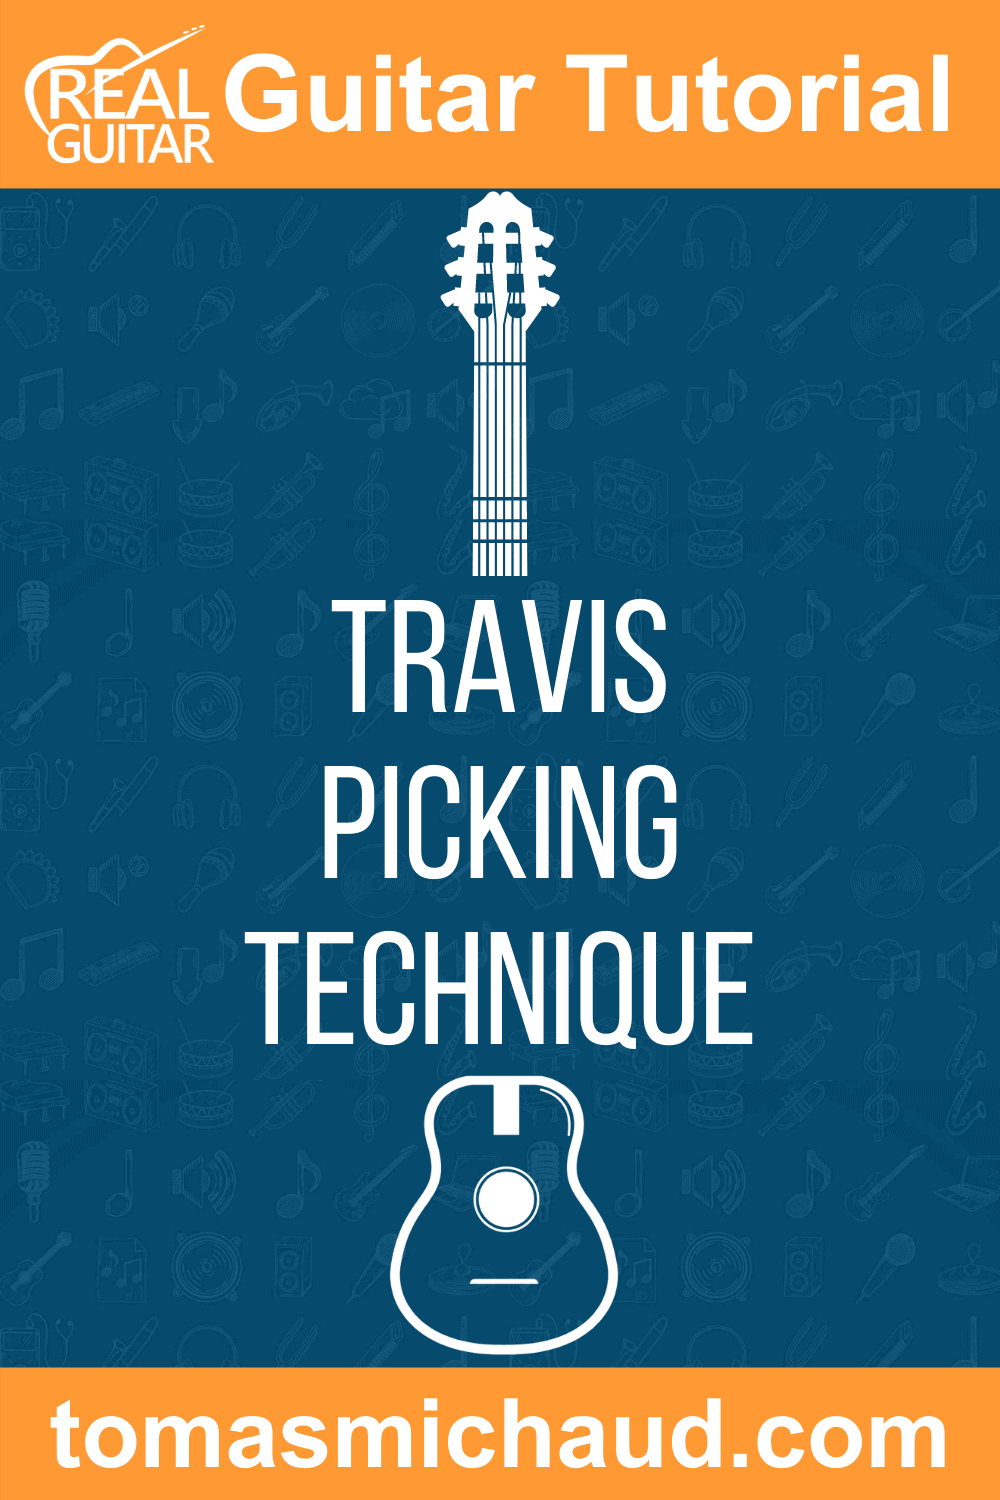 Travis Picking Technique